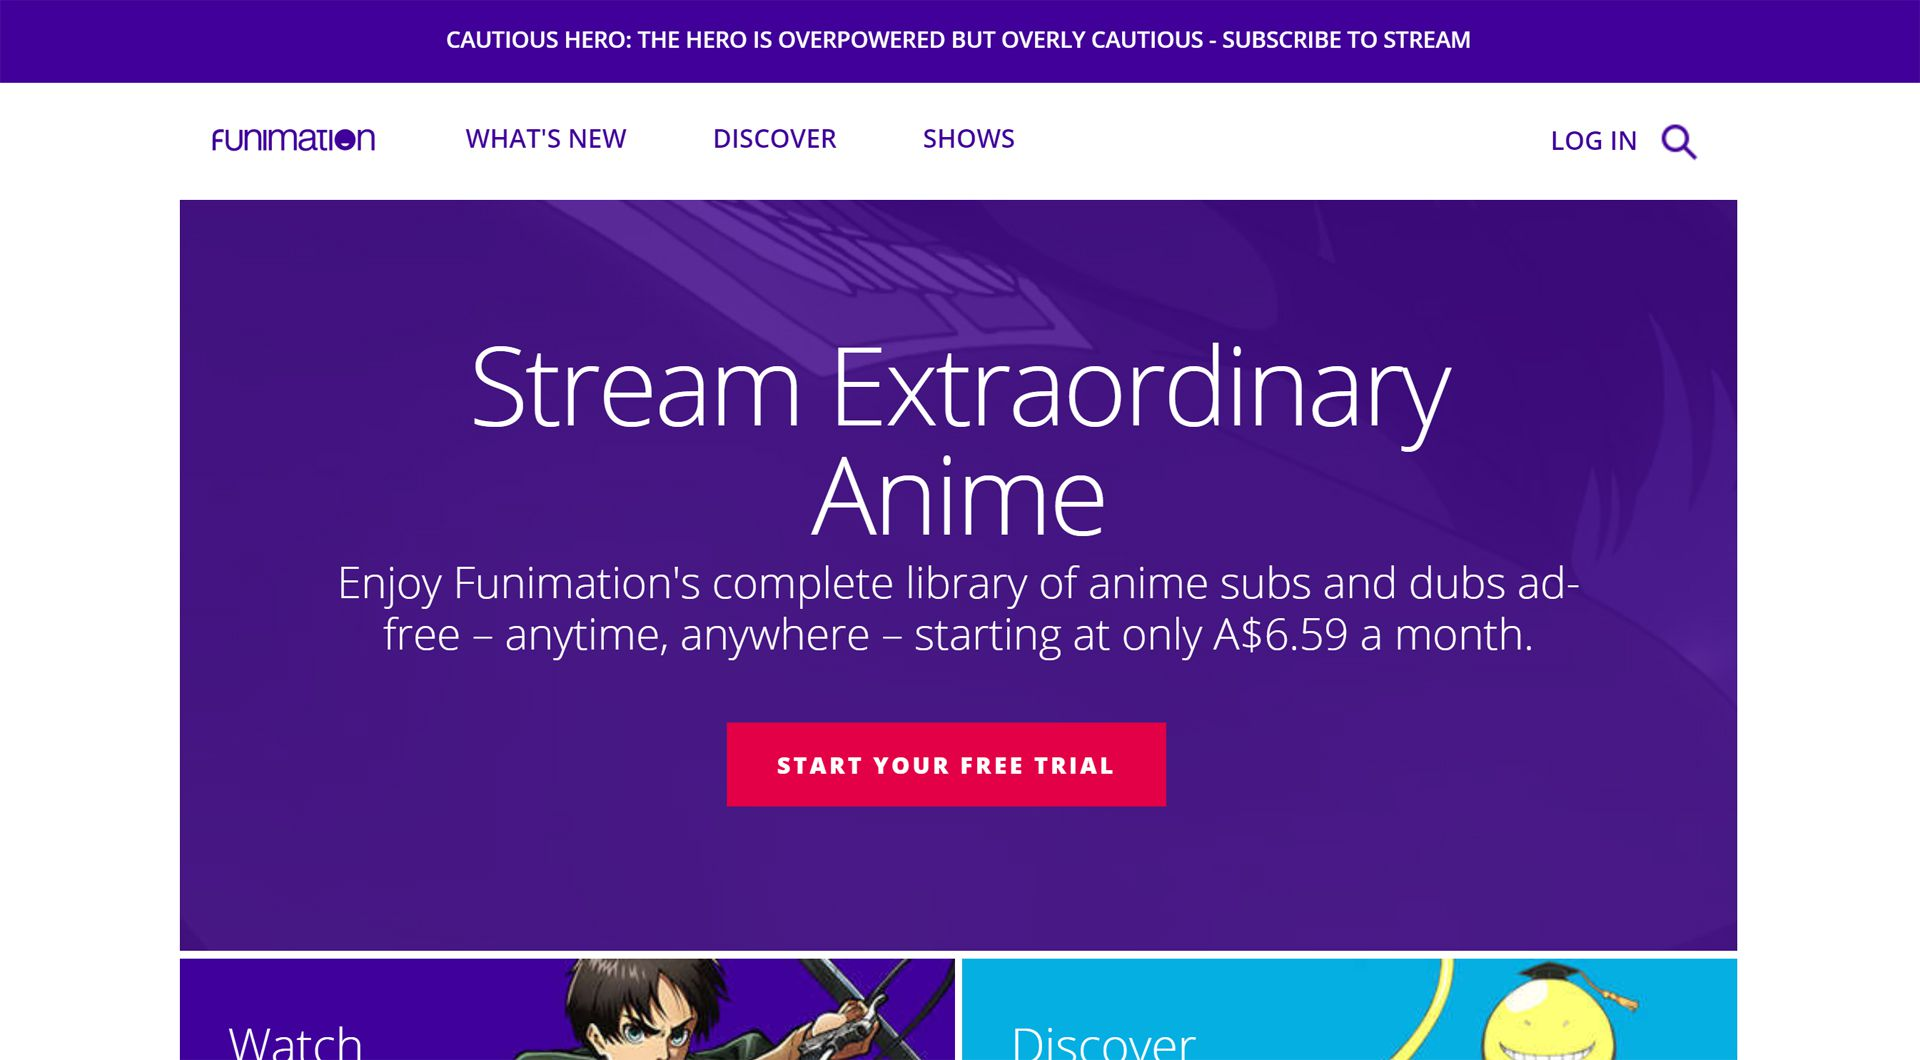 Funimation Now anime streaming service on the Funimation website.